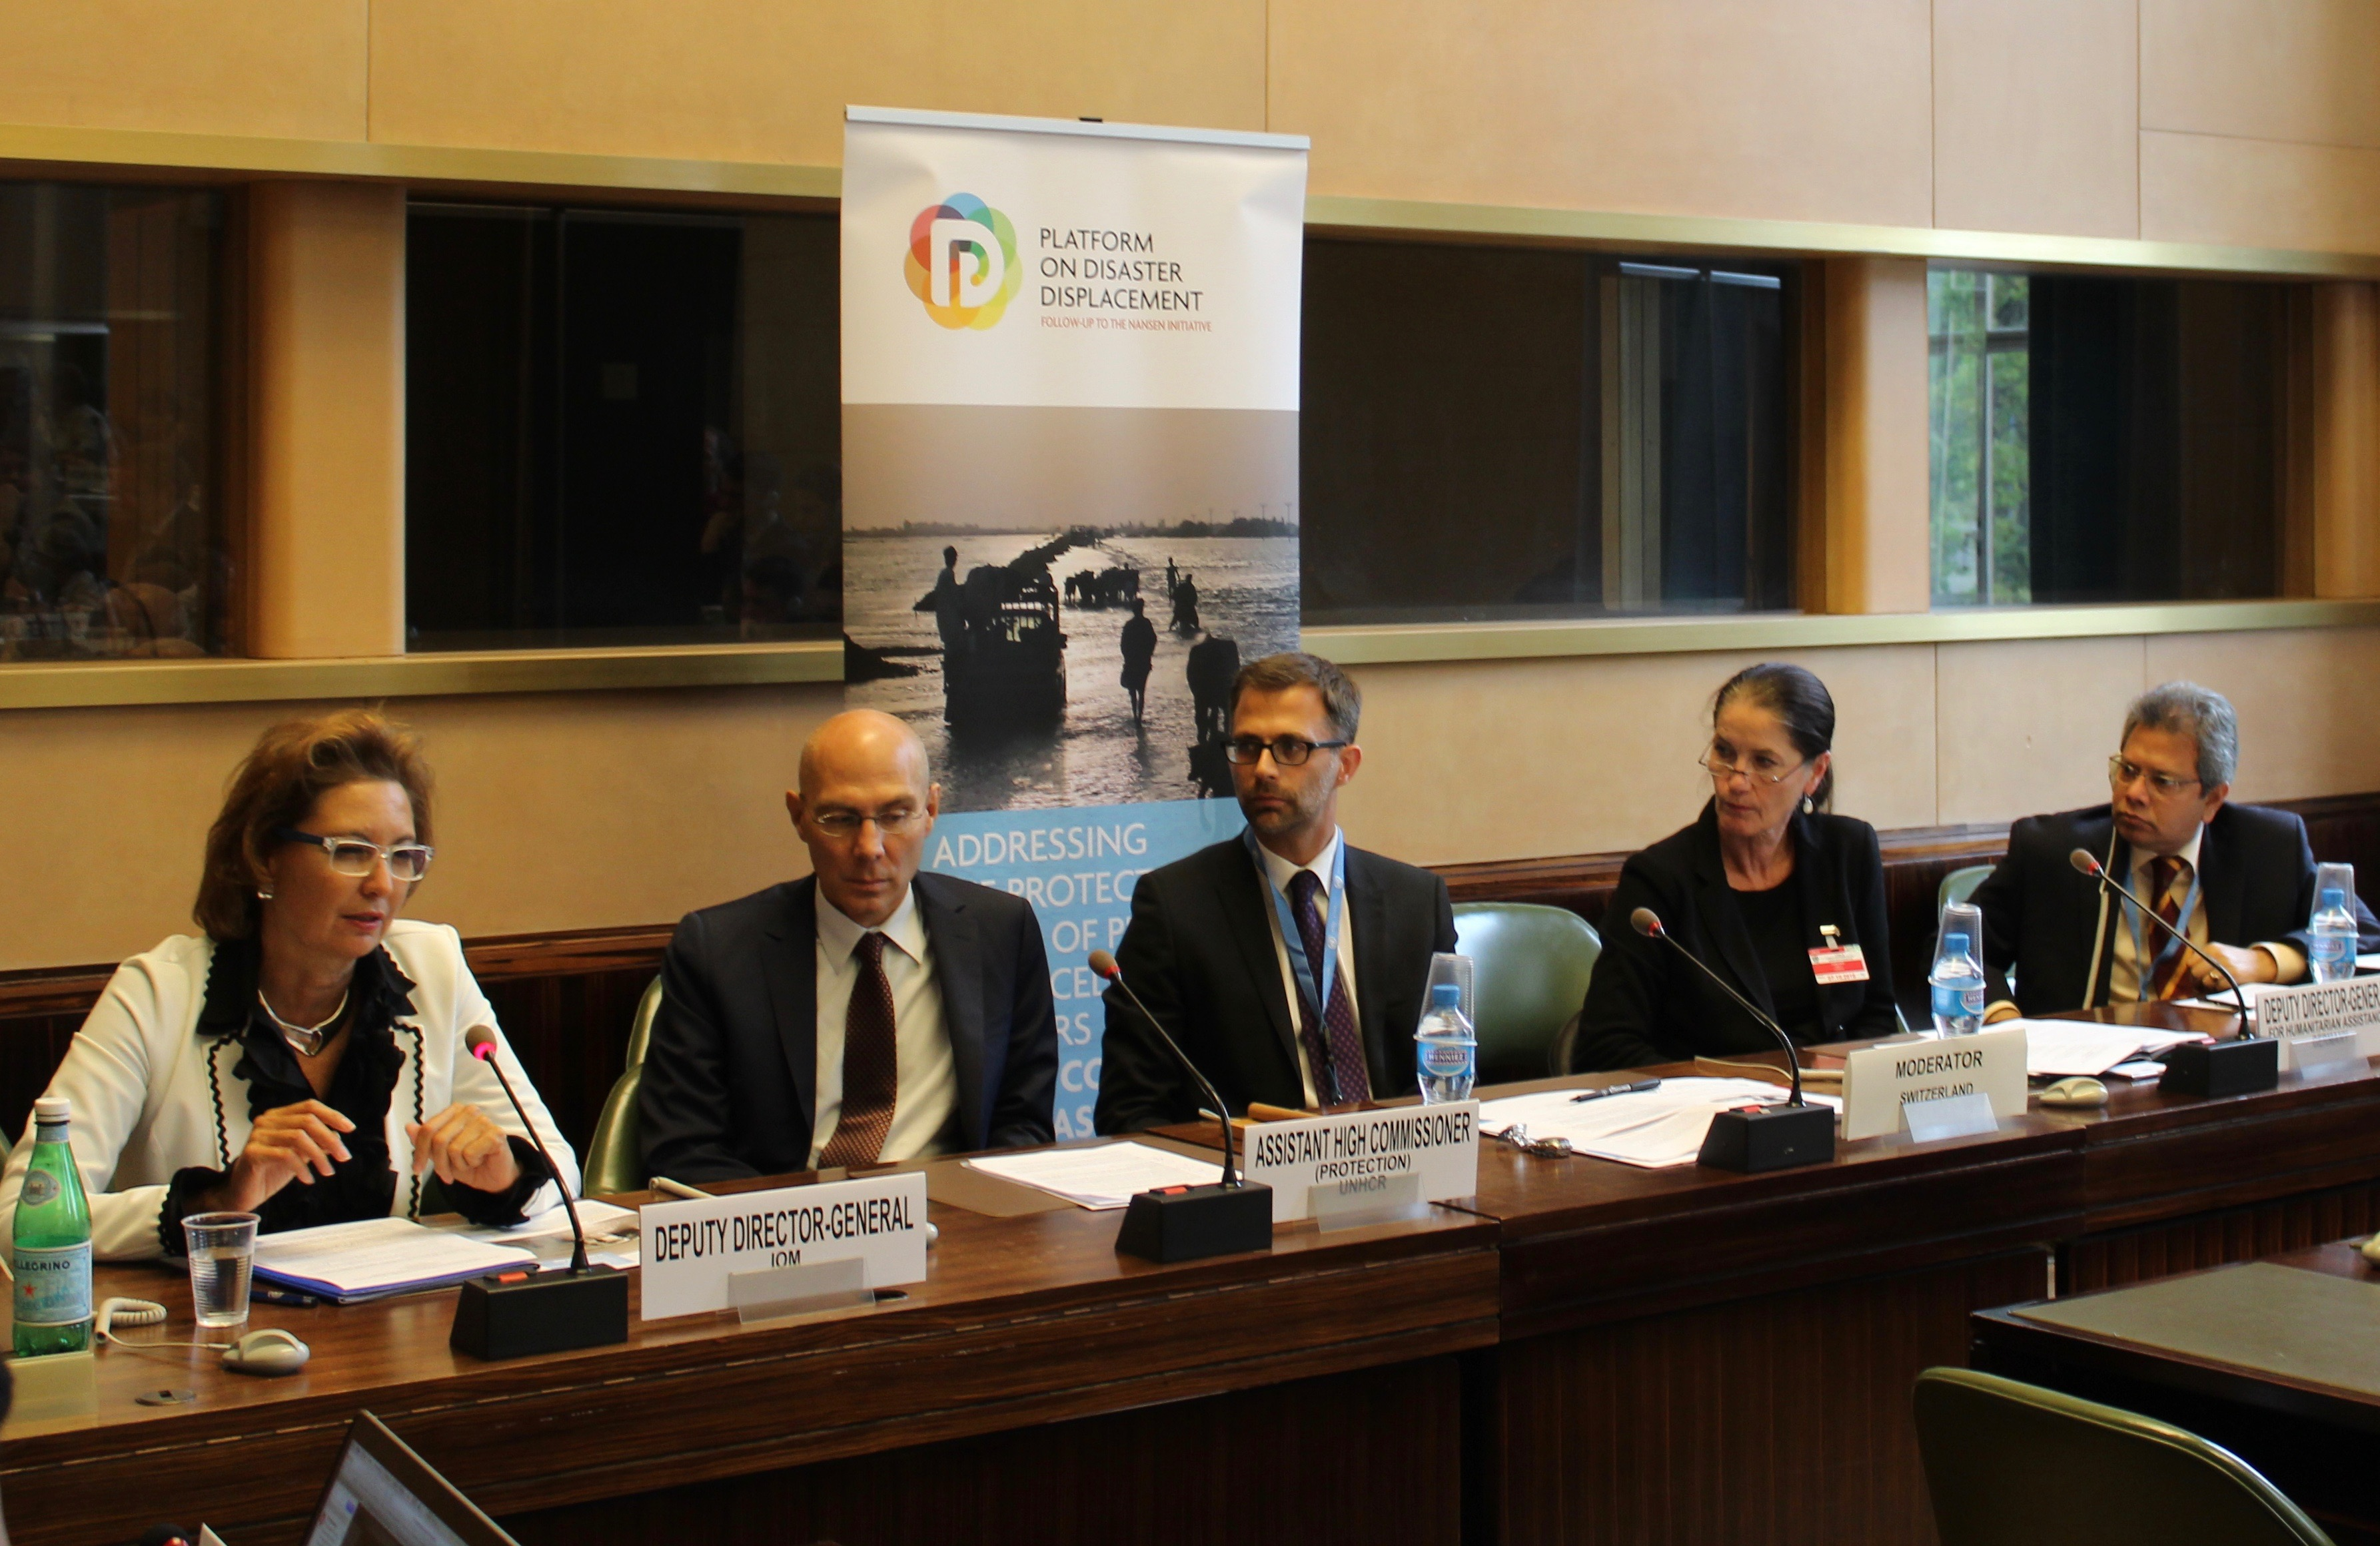 Side Event of the 67th UNHCR Executive Committee – Beyond the Nansen Initiative Protection Agenda: Platform on Disaster Displacement